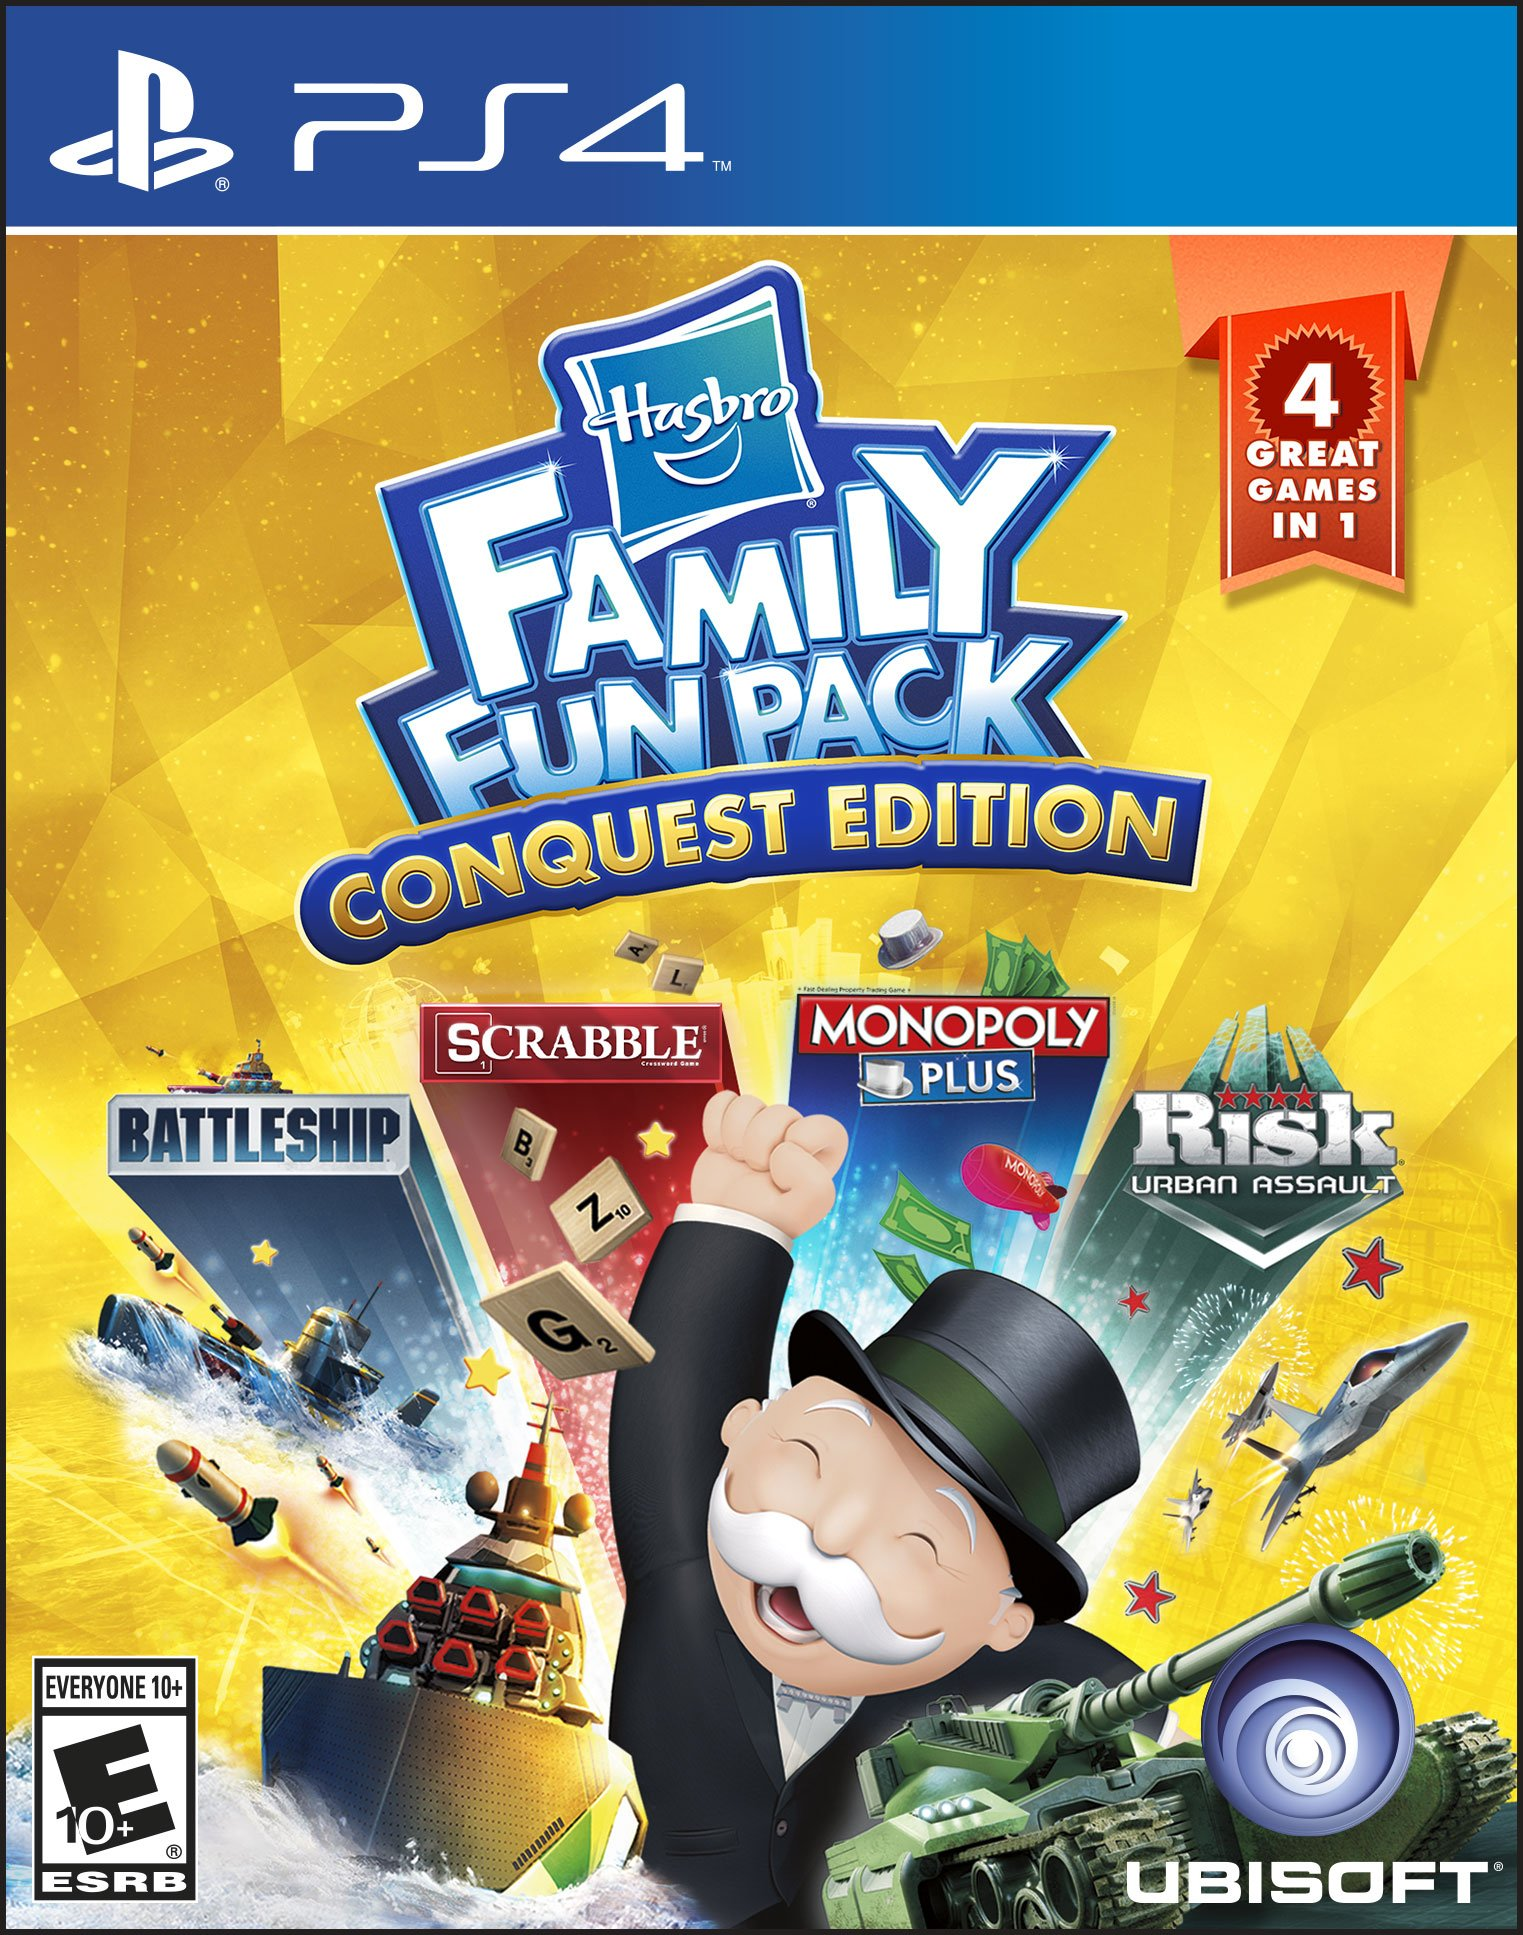 Hasbro Family Fun Pack Conquest Edition - Playstation 4